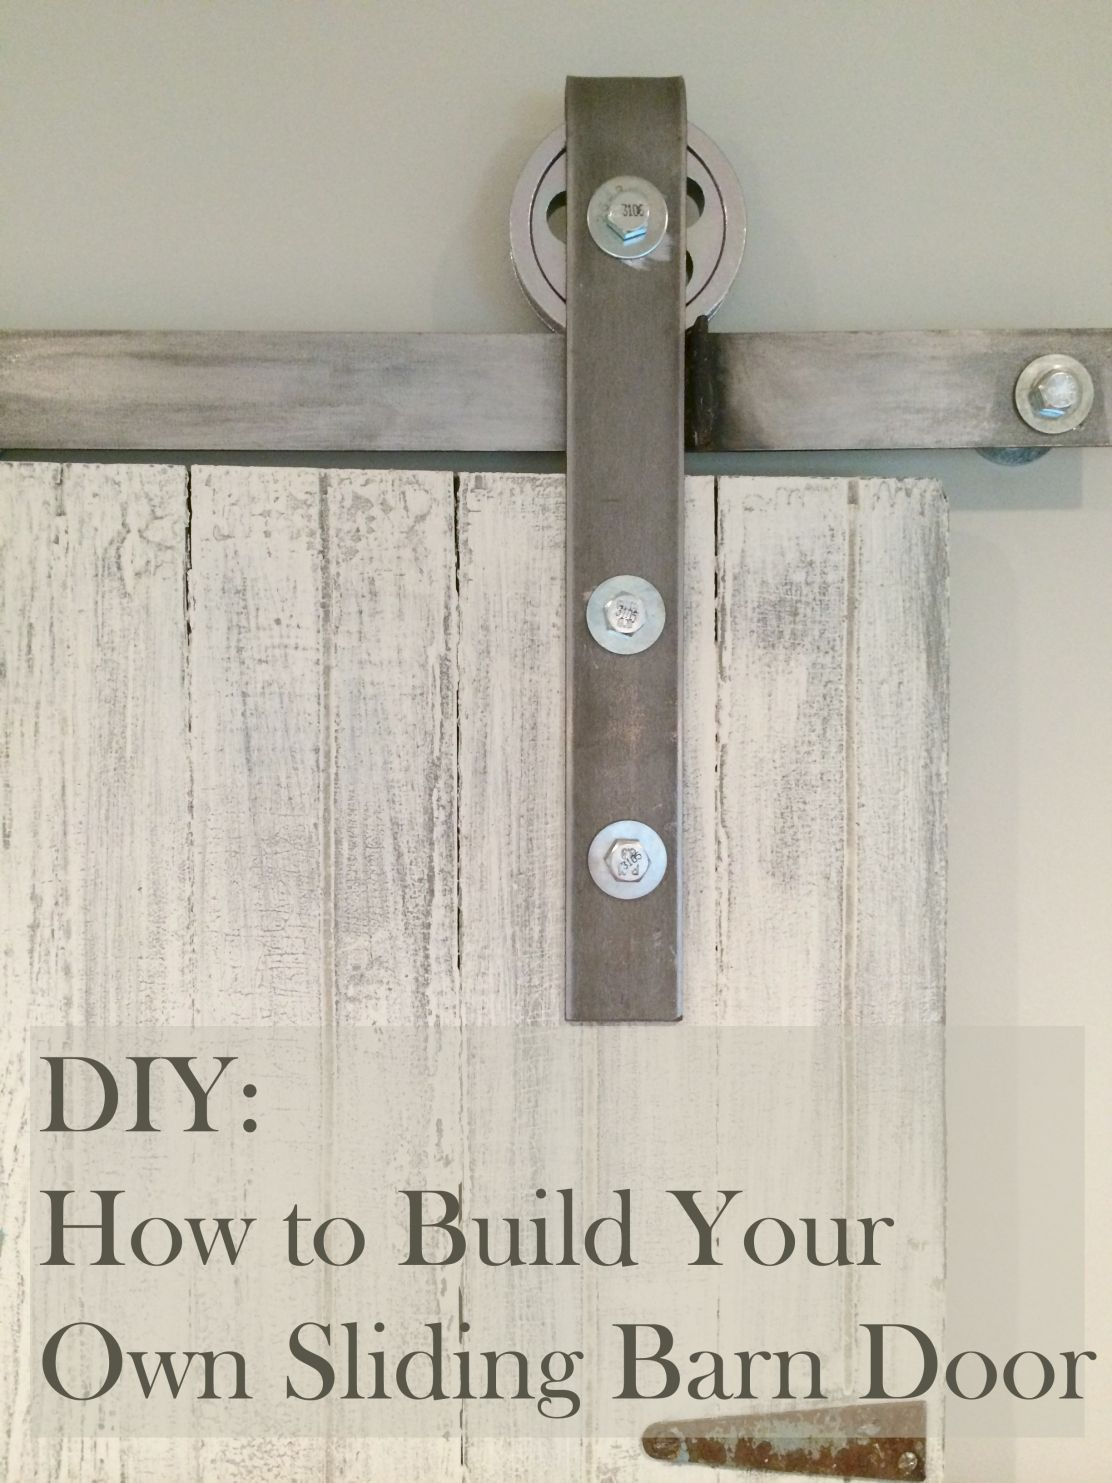 Diy how to make your own sliding barn door to build pinterest